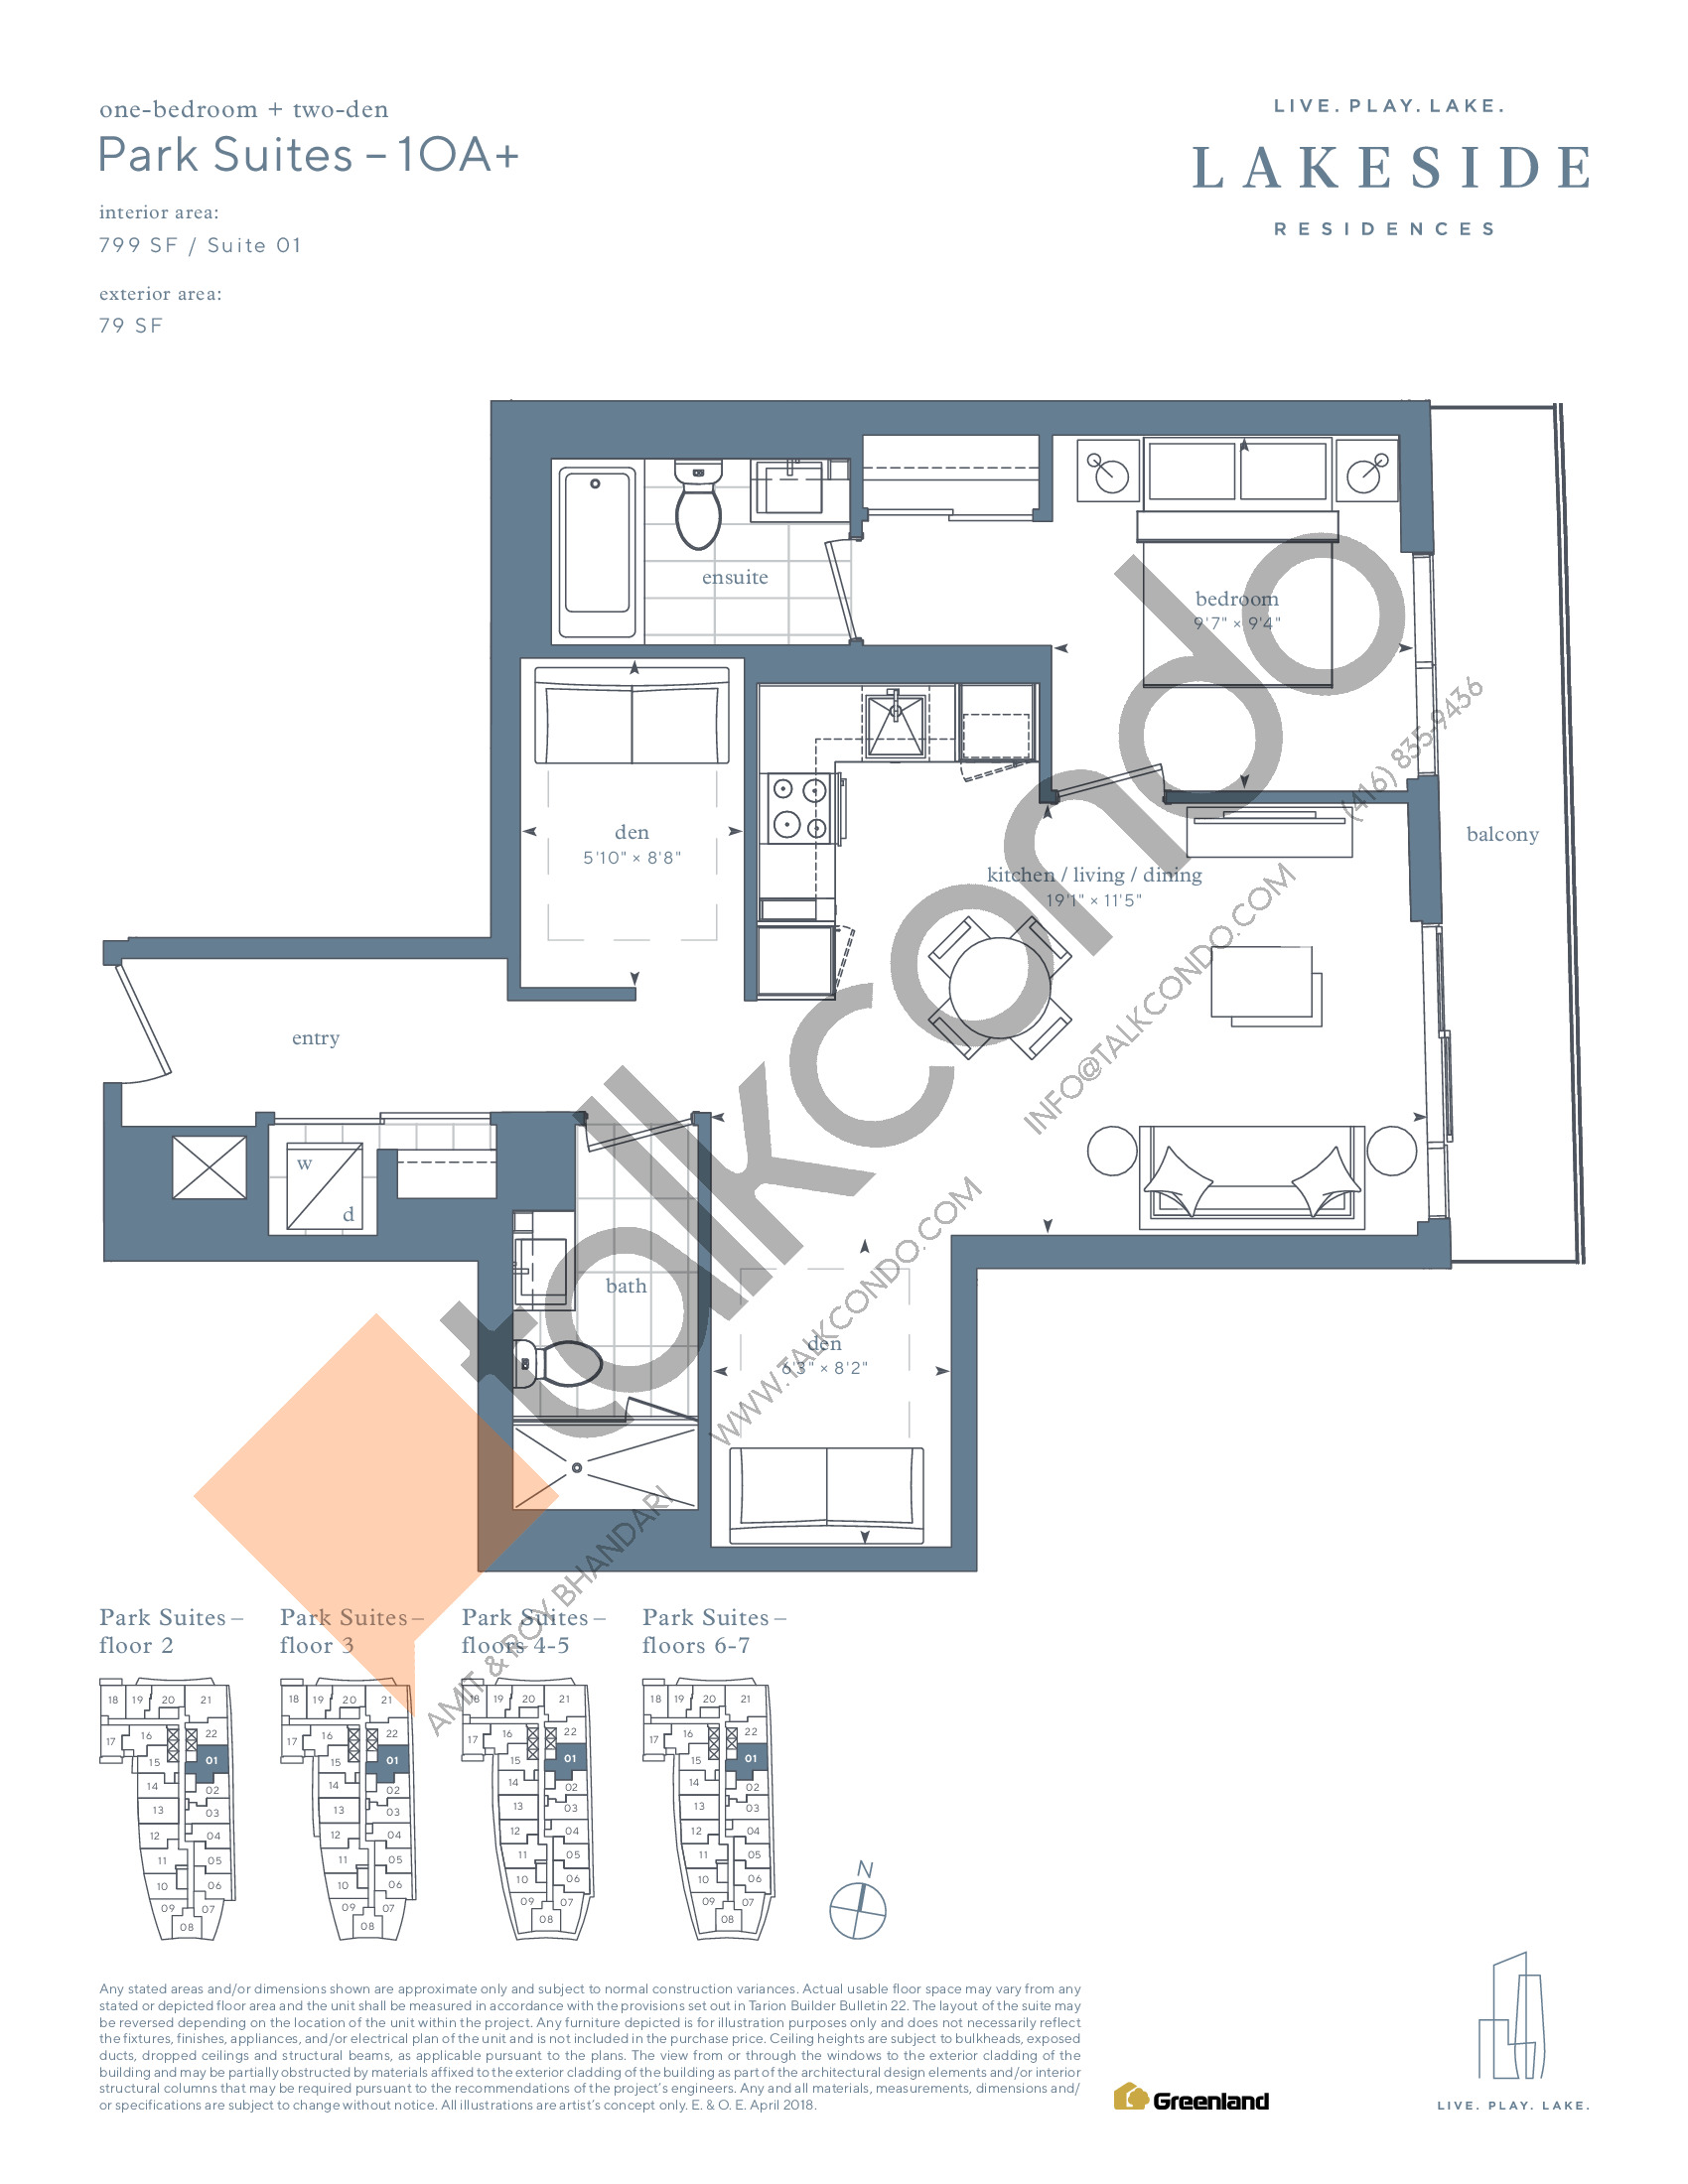 Park Suites - 1OA+ Floor Plan at Lakeside Residences - 799 sq.ft